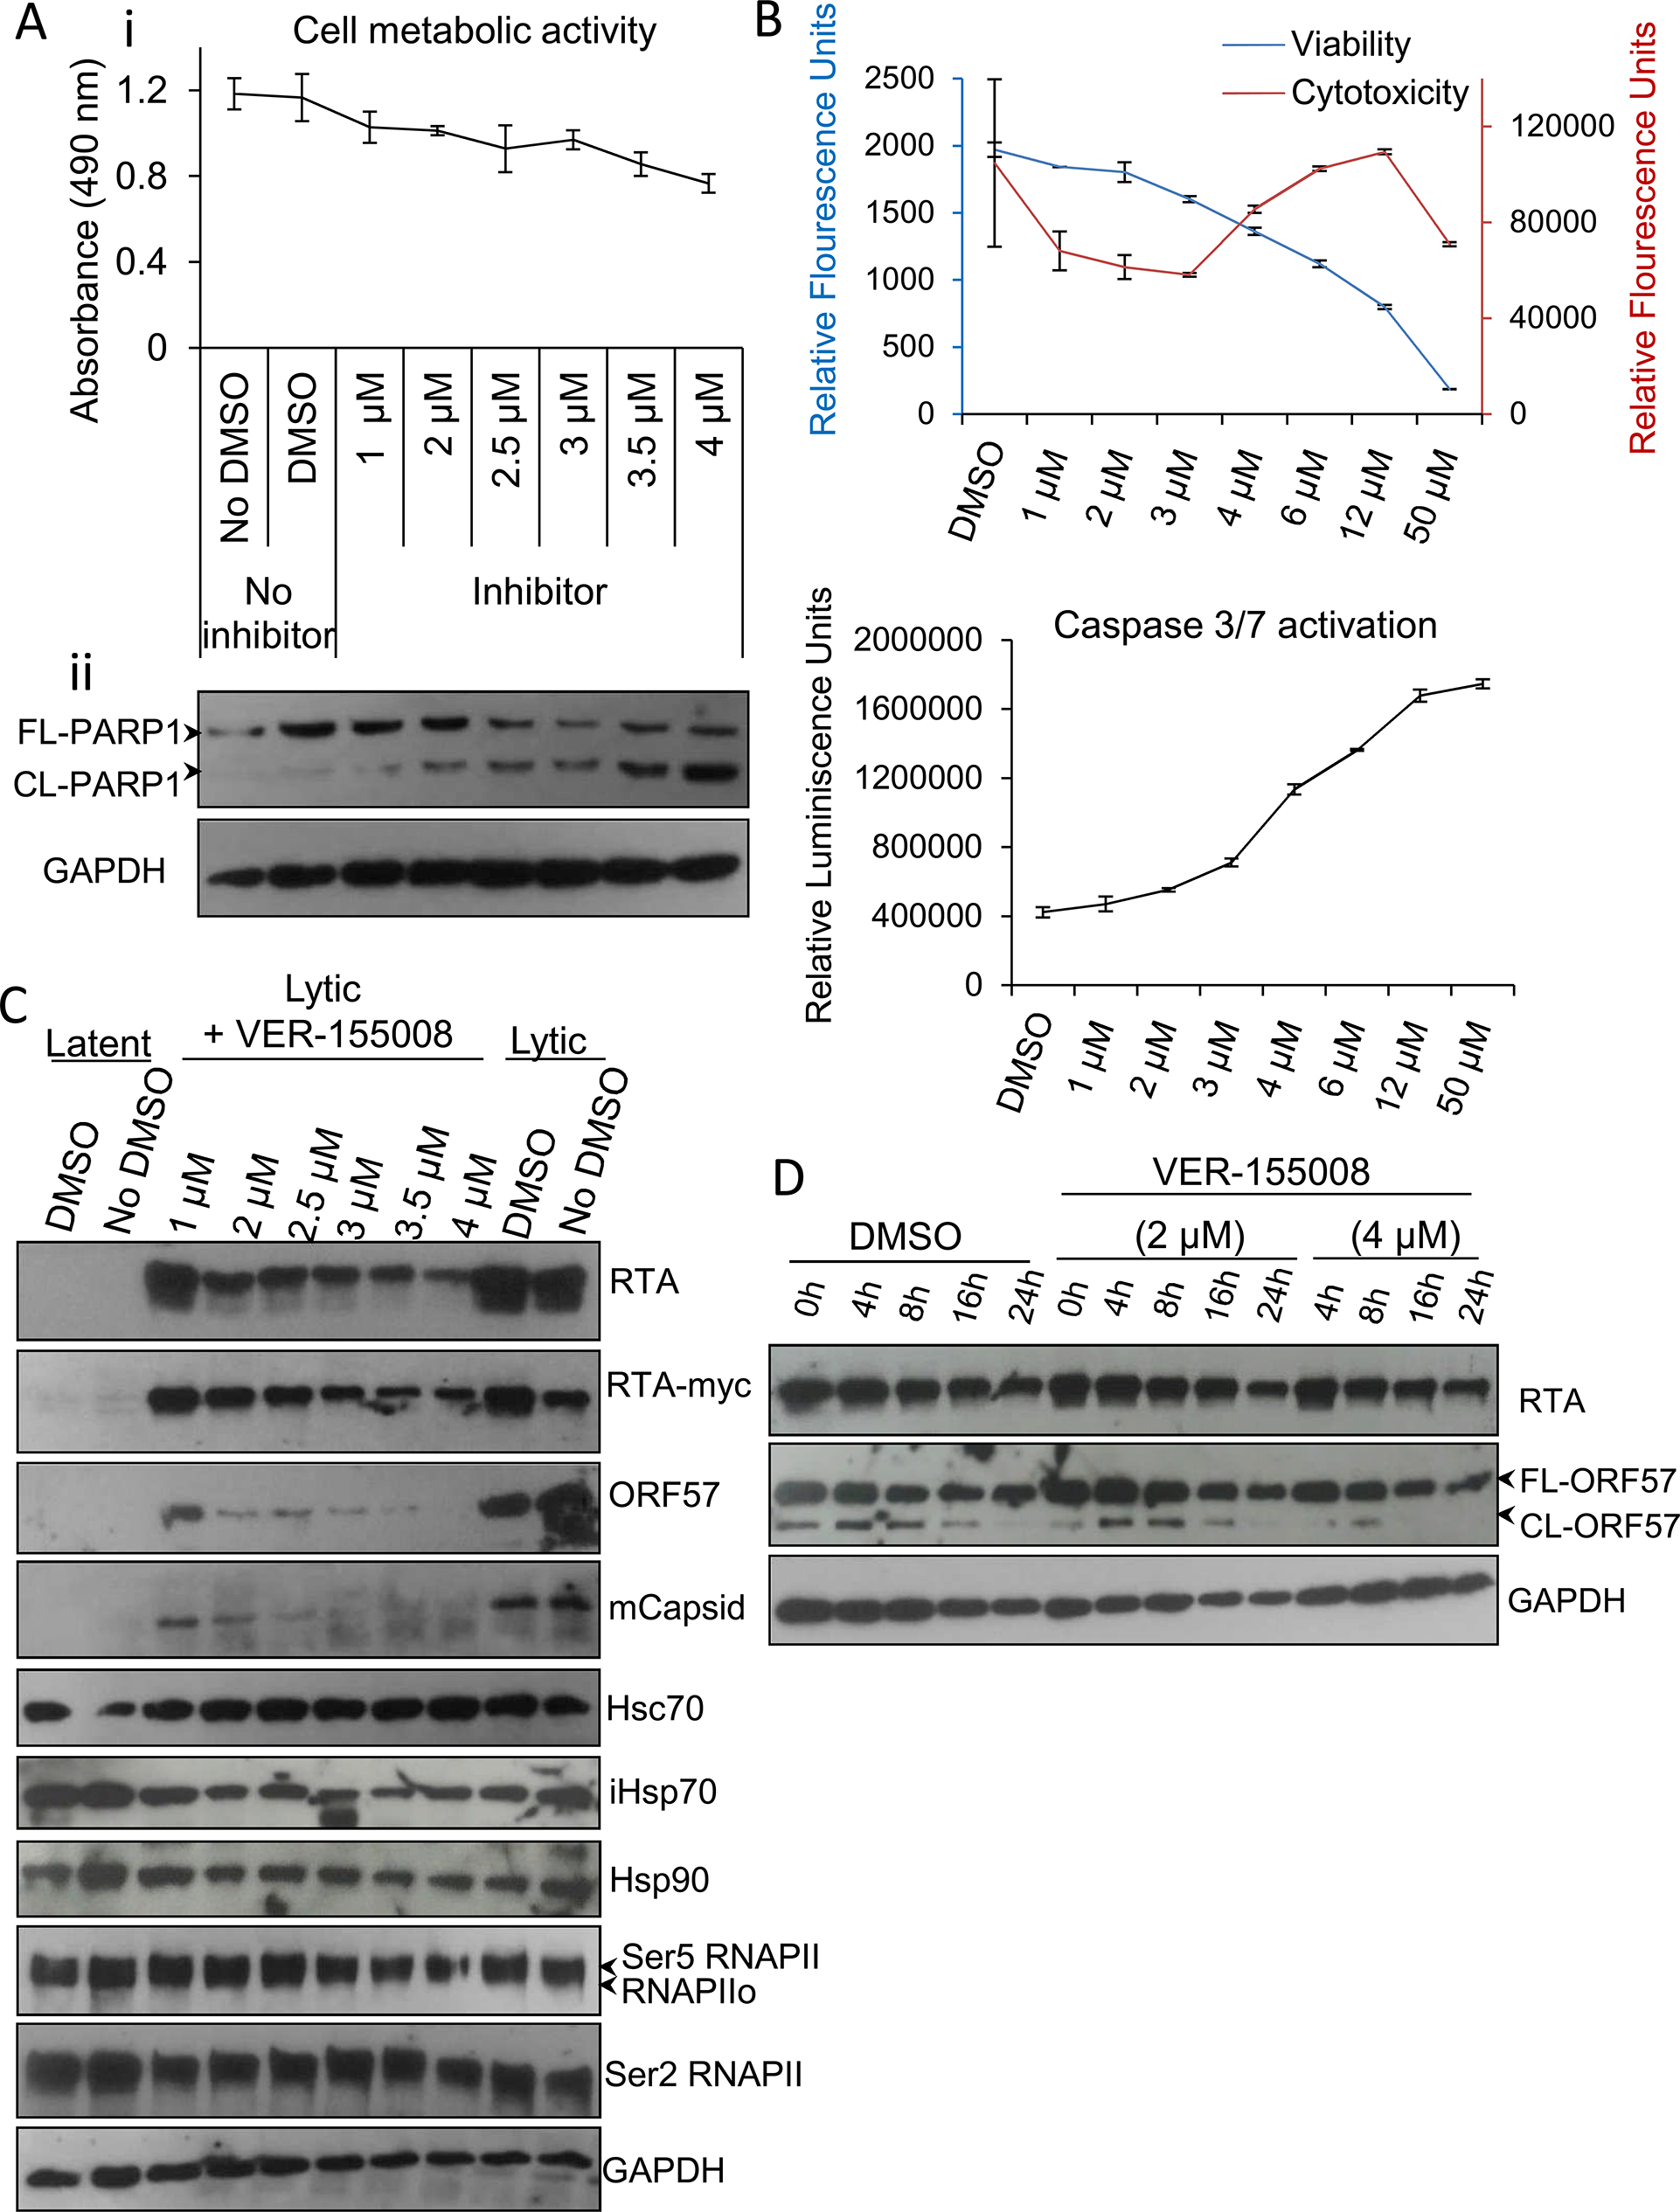 VER-155008 abrogated viral protein synthesis pre-translationally in TREx BCBL1-RTA cells.